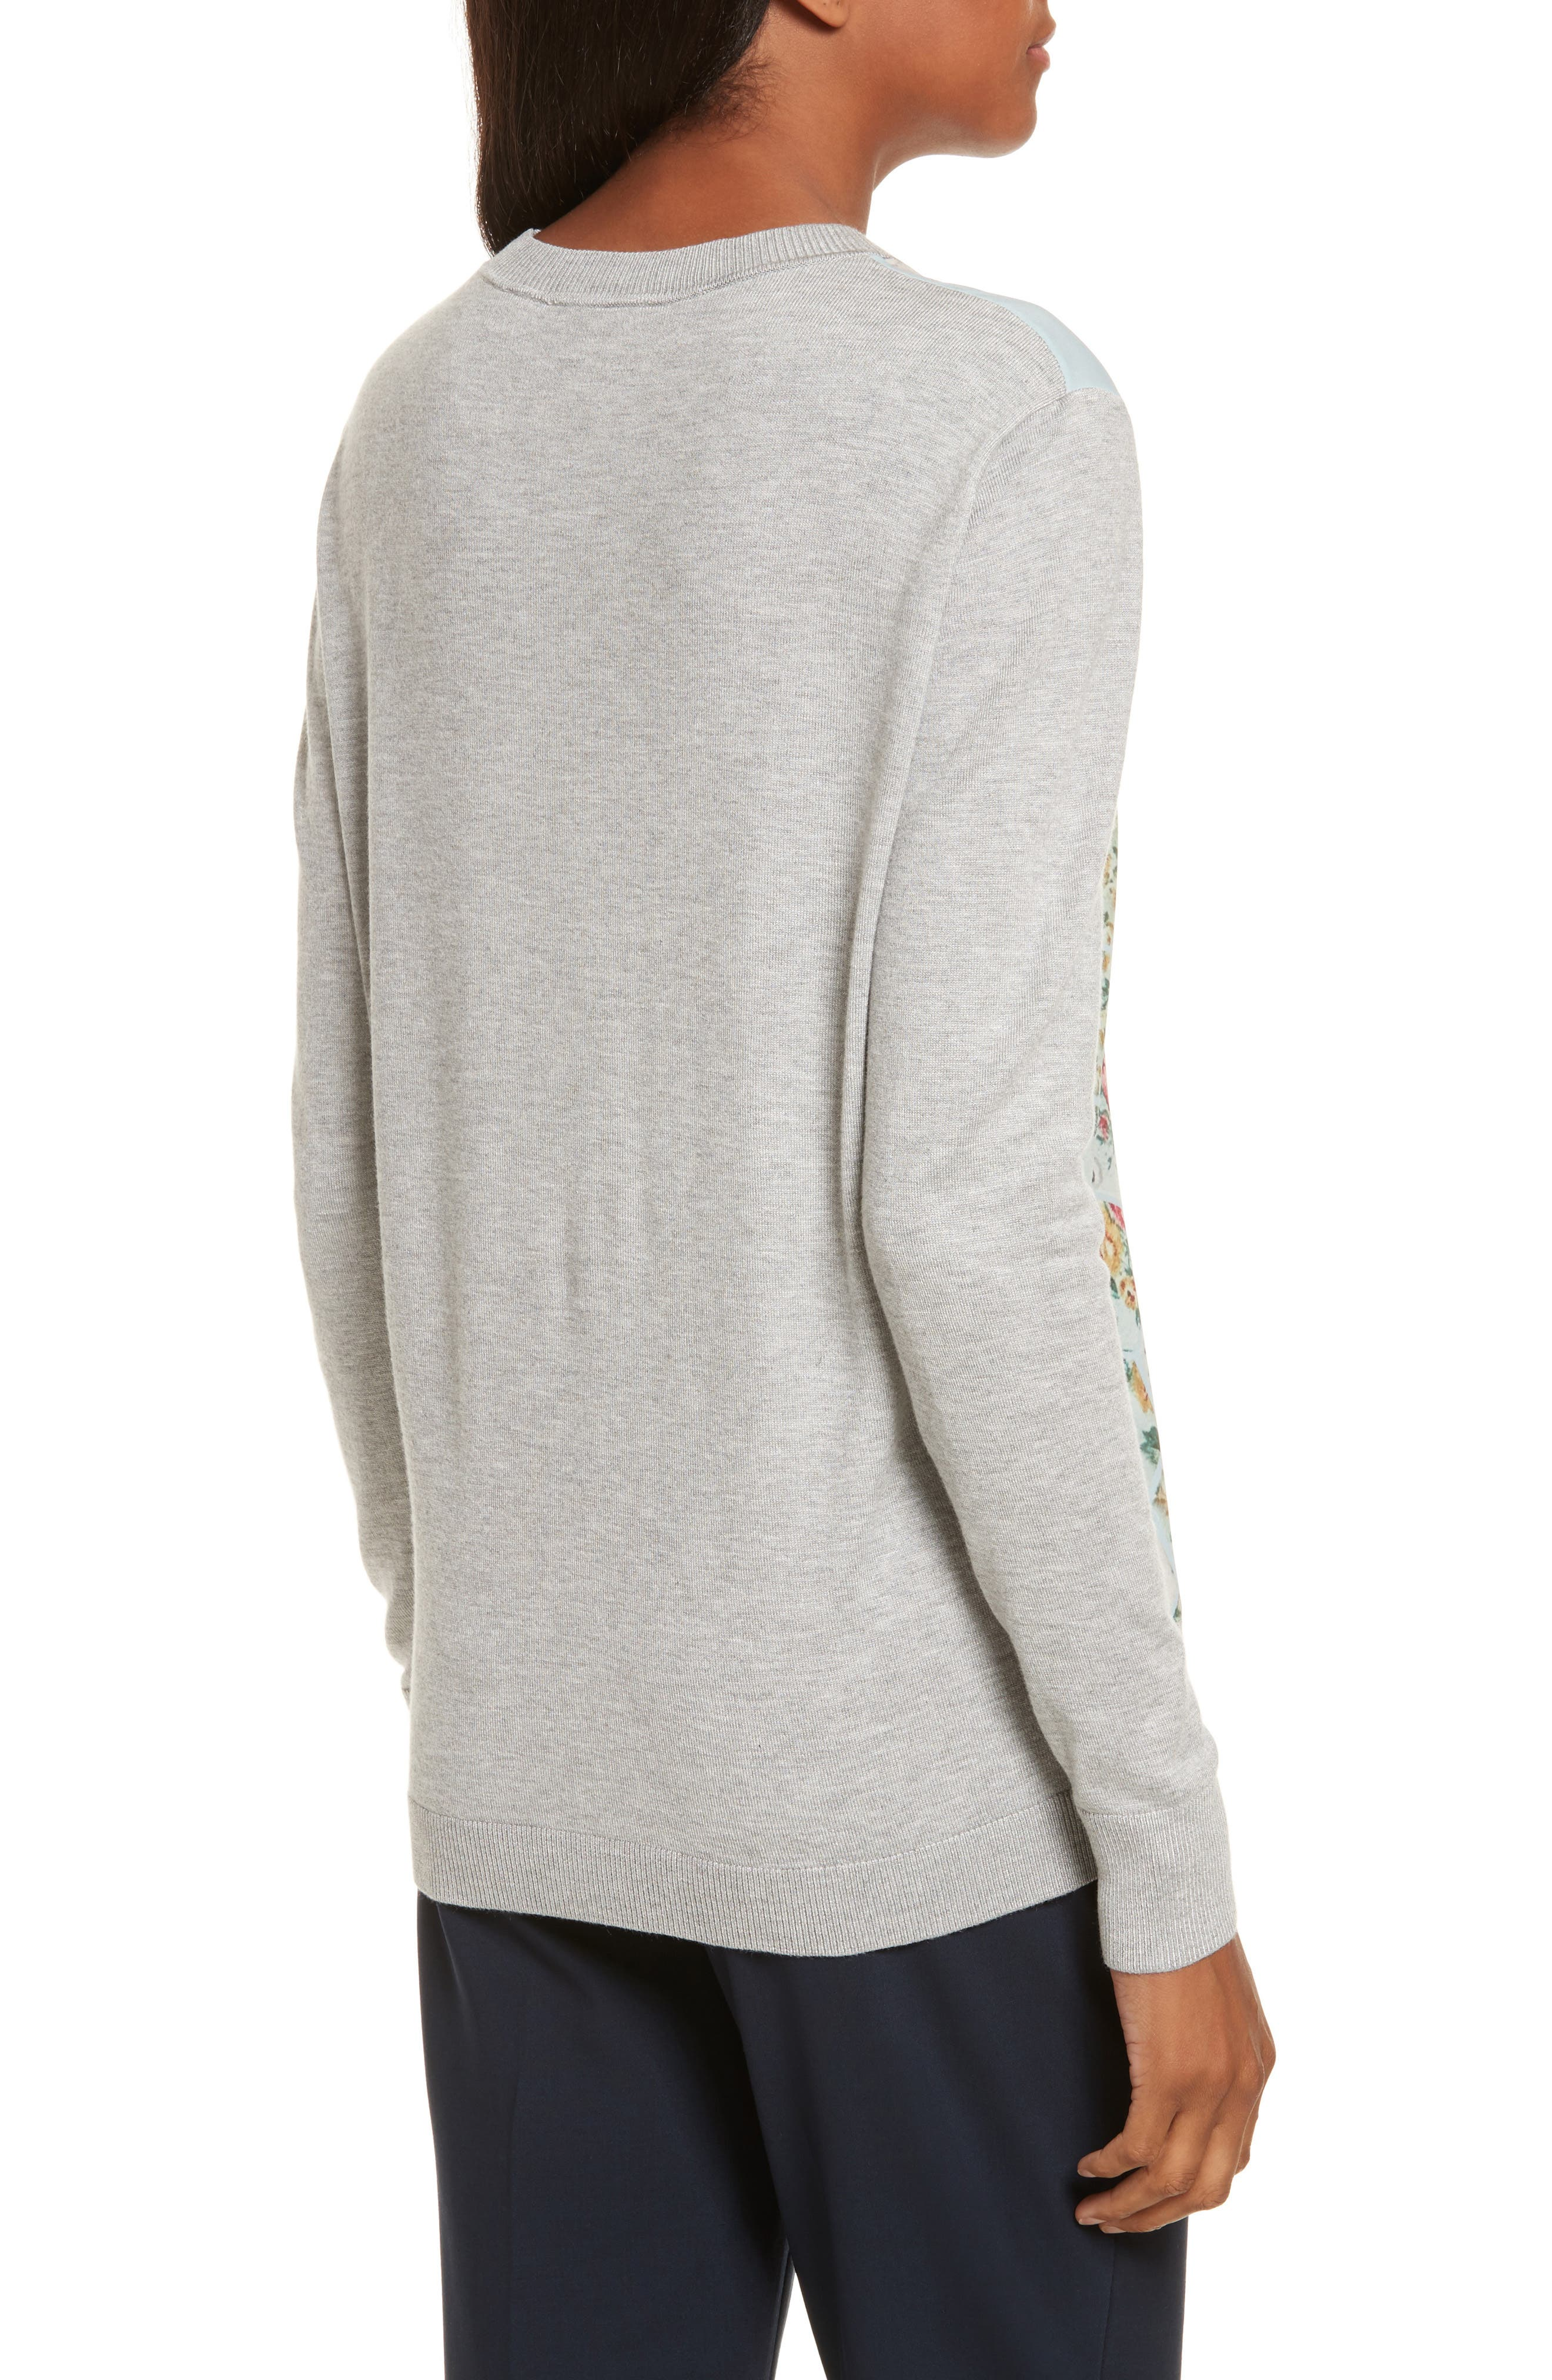 Fareeda Woven Front Patchwork Sweater,                             Alternate thumbnail 2, color,                             451